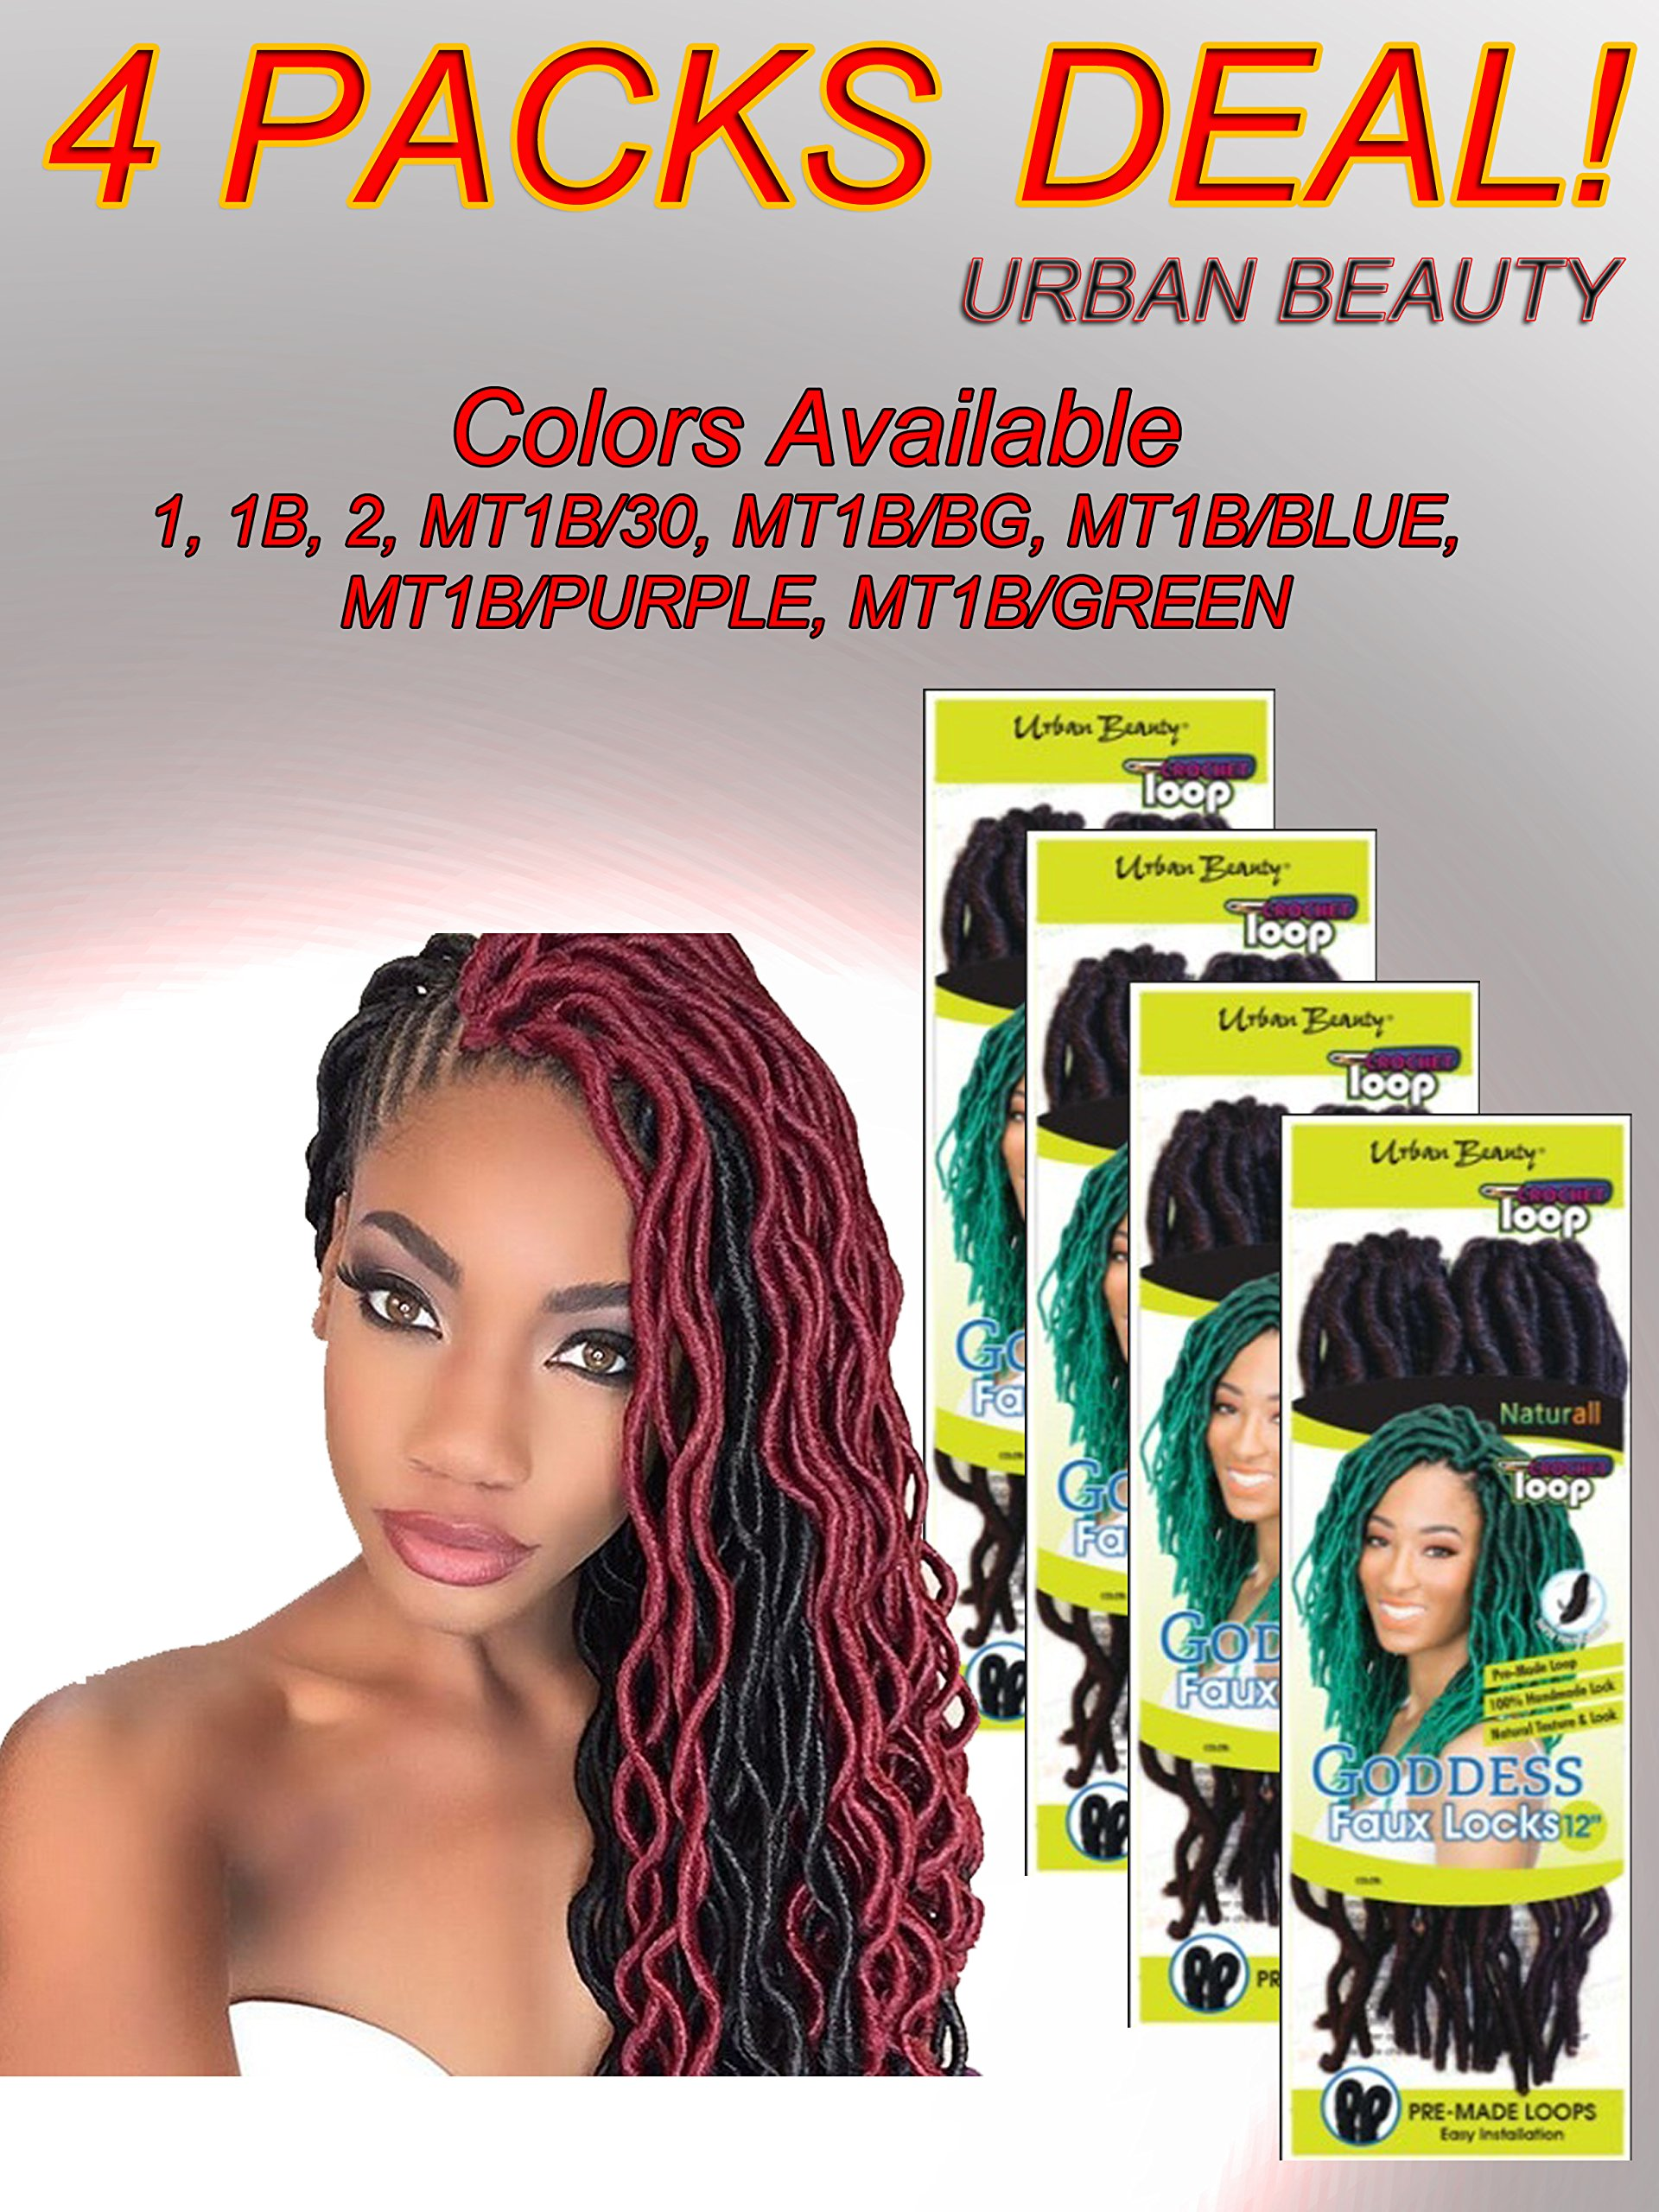 Amazon 4 Packs Of Urban Beauty Naturall Goddess Faux Locks 12